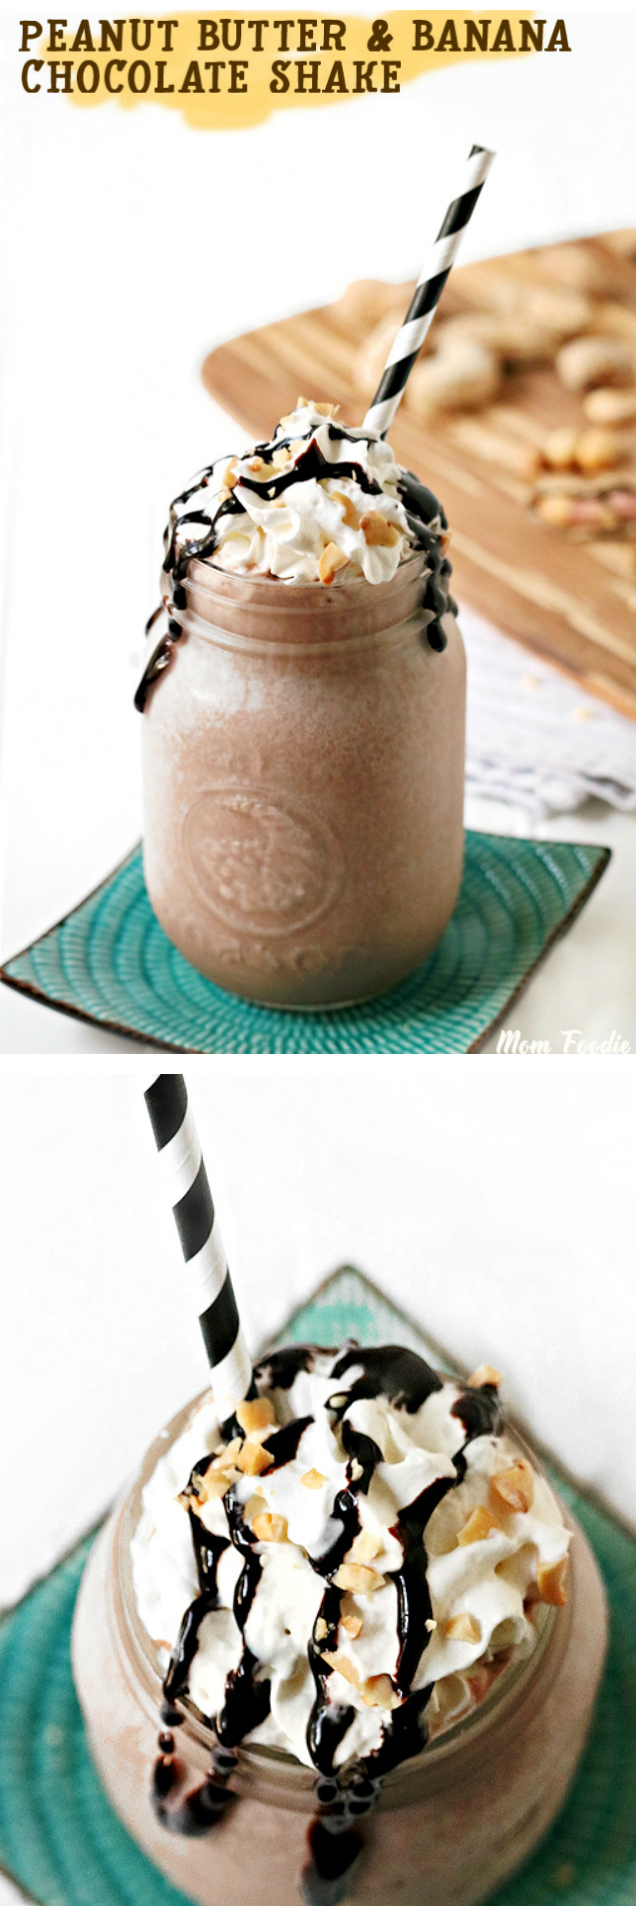 Peanut Butter & Banana Chocolate Shake